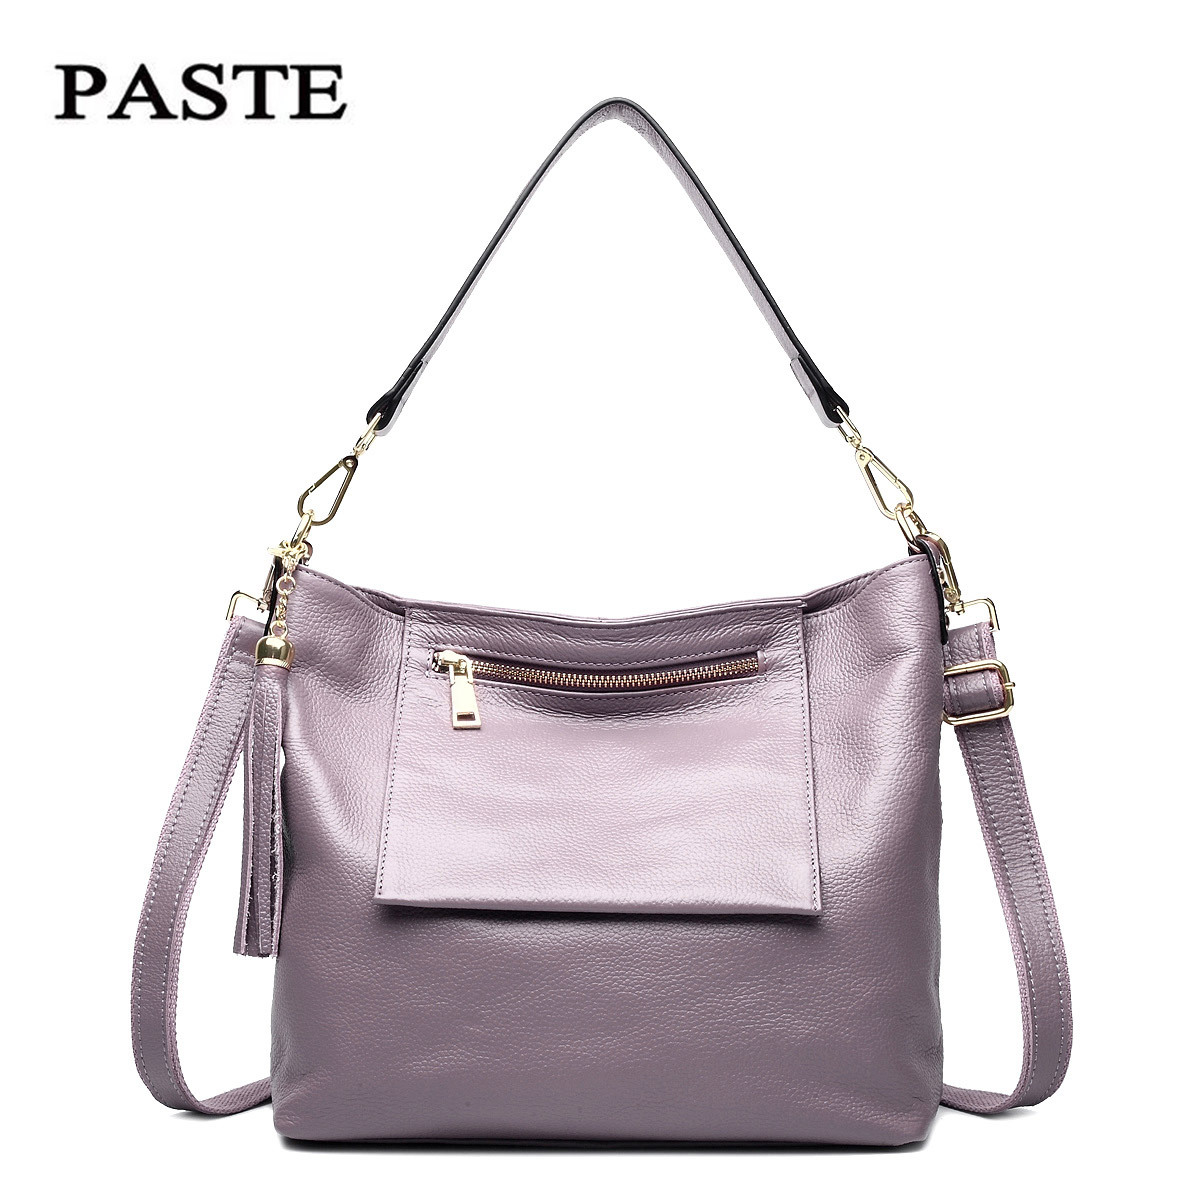 2018 New Arrival Fashion Design Women Bag Handbags Soft Genuine Cow Leather Single Shoulder Bags Luxury Cowhide Messenger bags fashion leather handbags luxury head layer cowhide leather handbags women shoulder messenger bags bucket bag lady new style